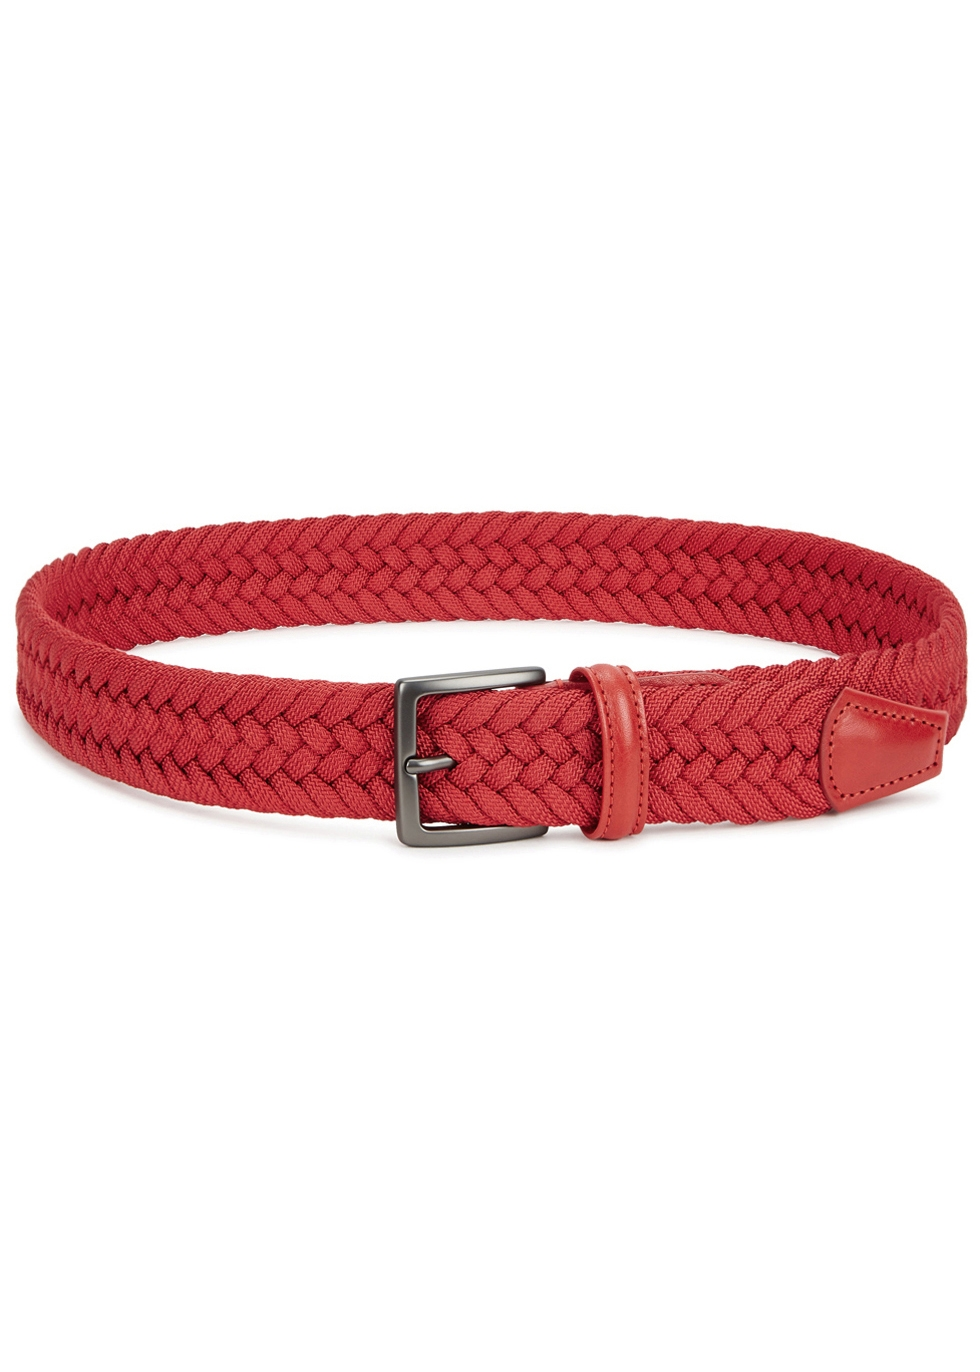 Red woven canvas belt - Anderson's